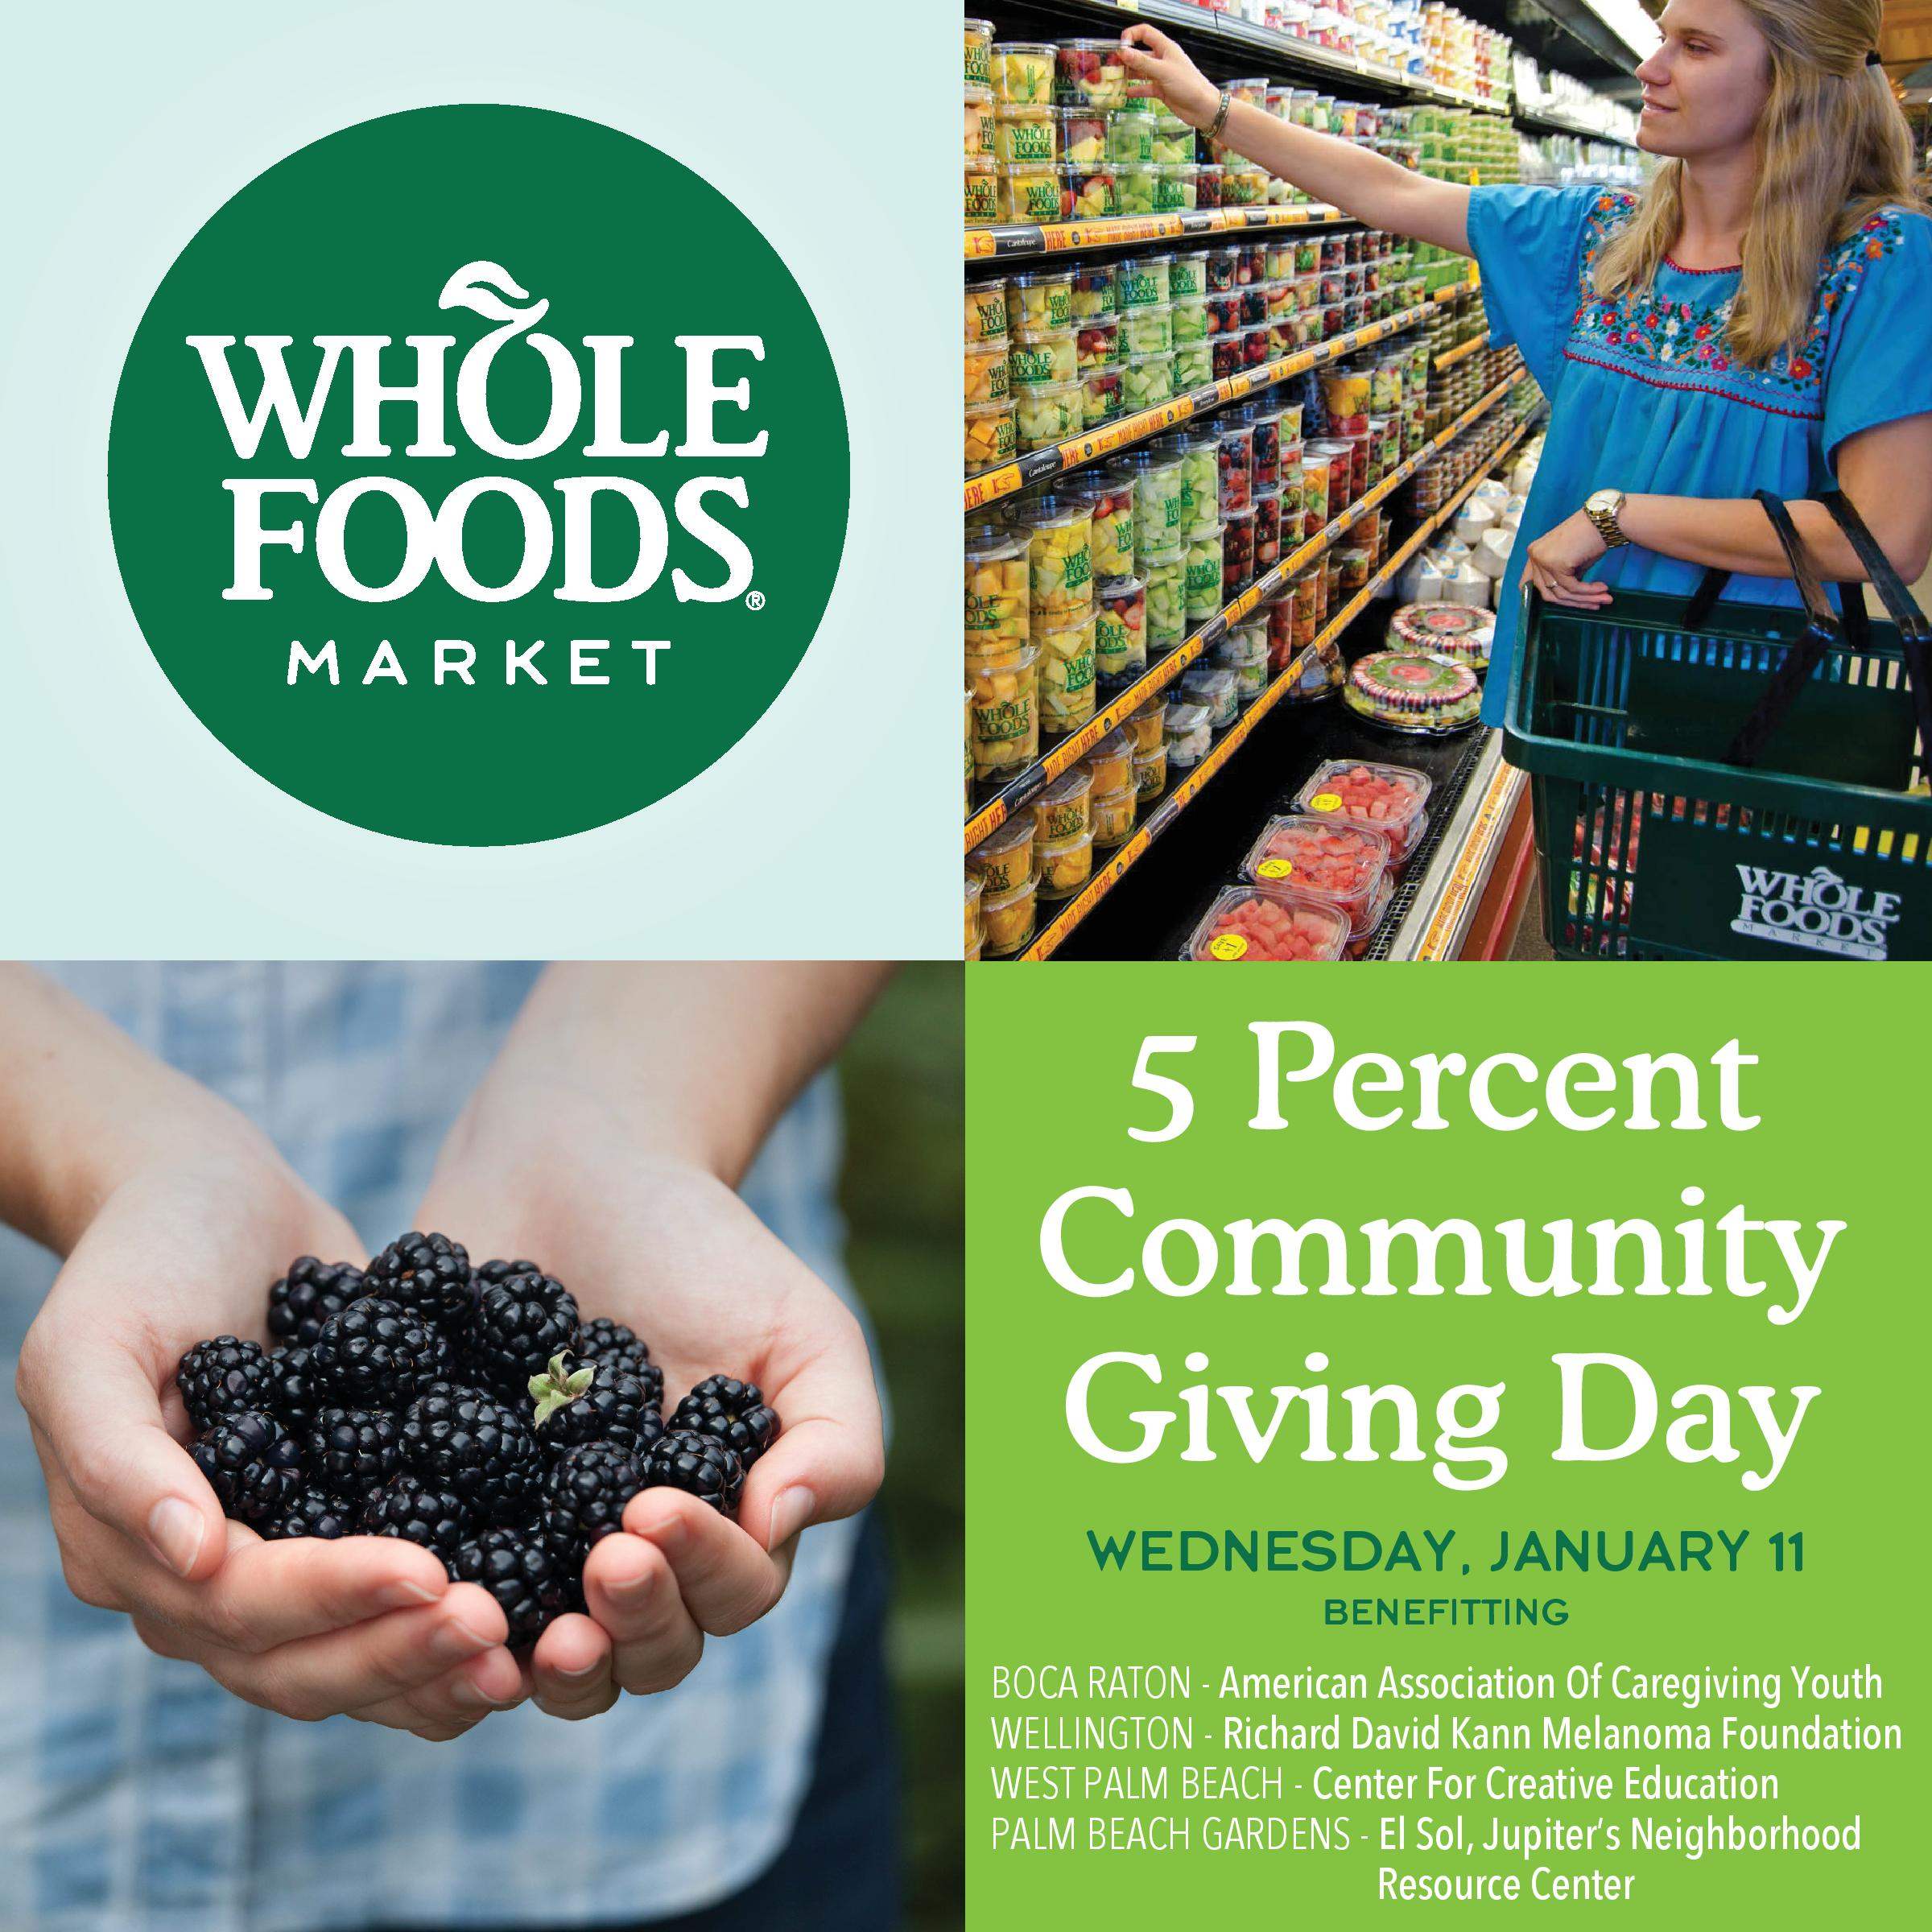 Rdk Melanoma Is Proud To Be A Recipient Of The Whole Foods